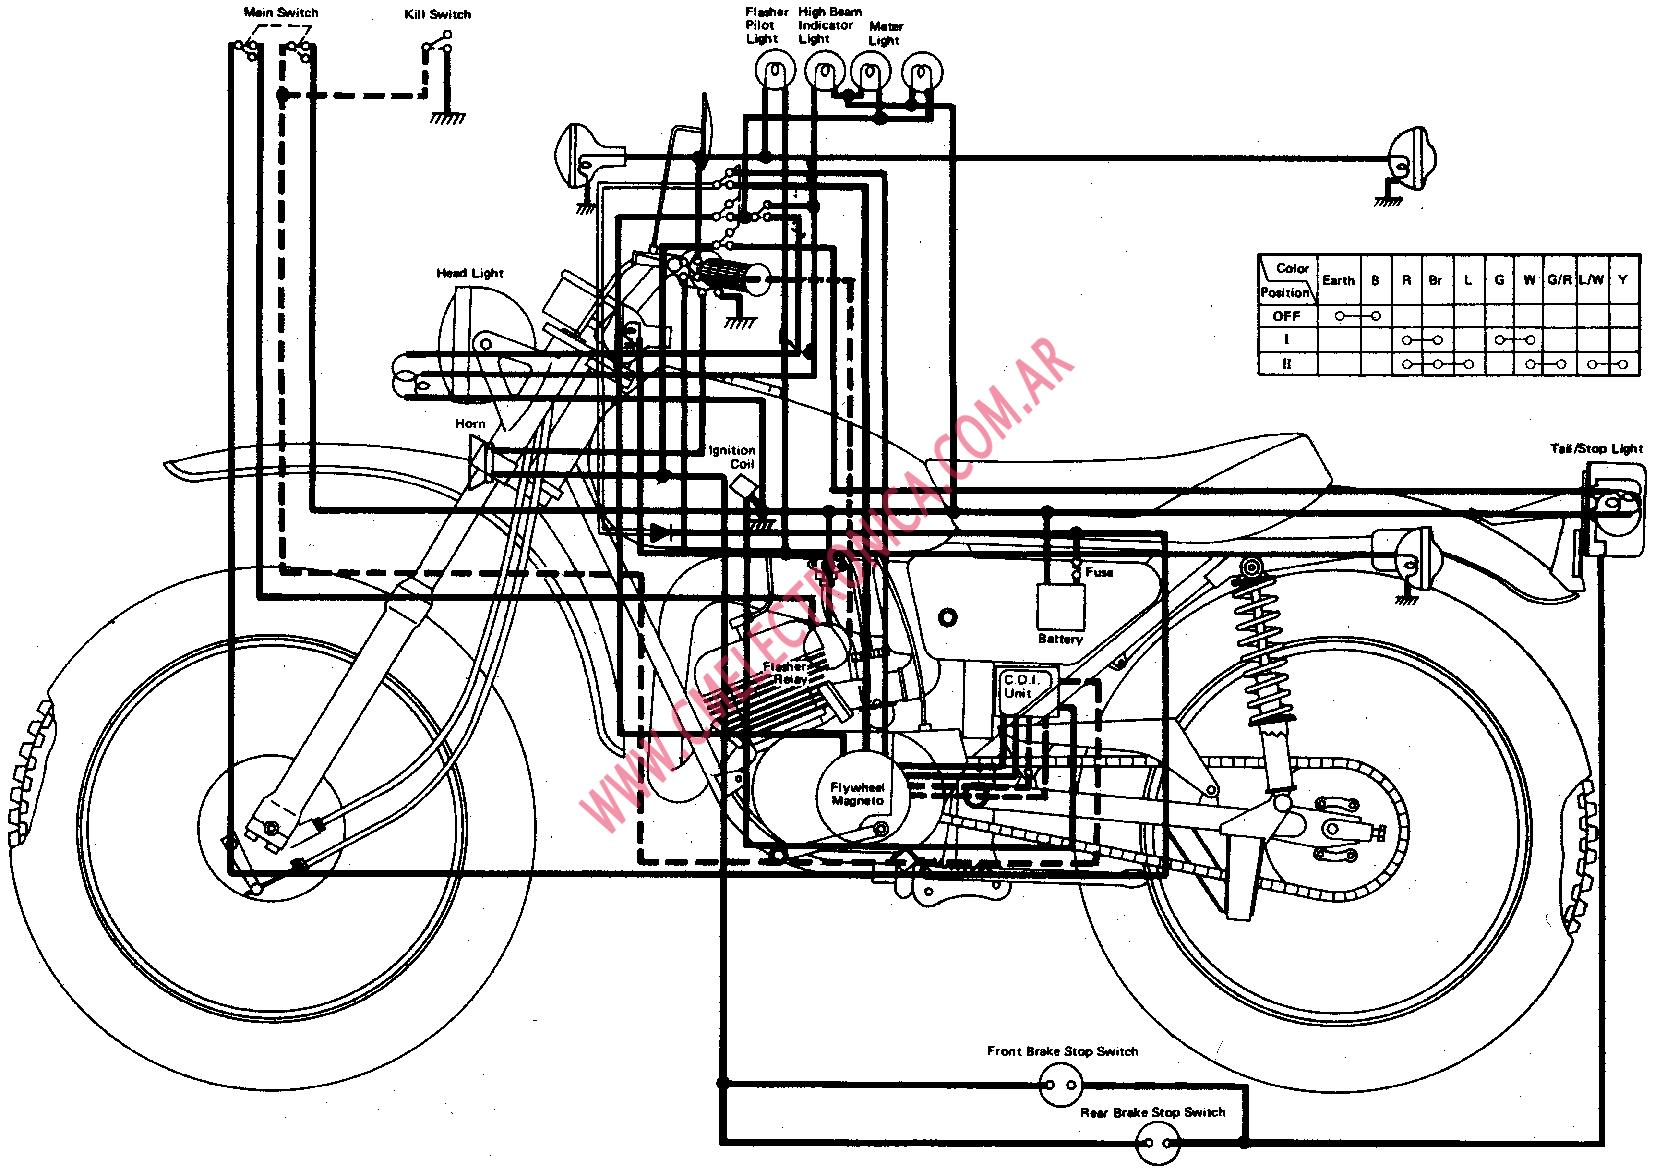 Cafe Racer Wiring besides 1981 Honda Cx500 Wiring Diagram additionally 80 Yamaha Xs1100 Wiring Diagram together with 1975 Honda Cb360t Wiring Diagram also 1978 Honda Cb750 Carburetor Diagram. on 1974 honda cb750 wiring diagram